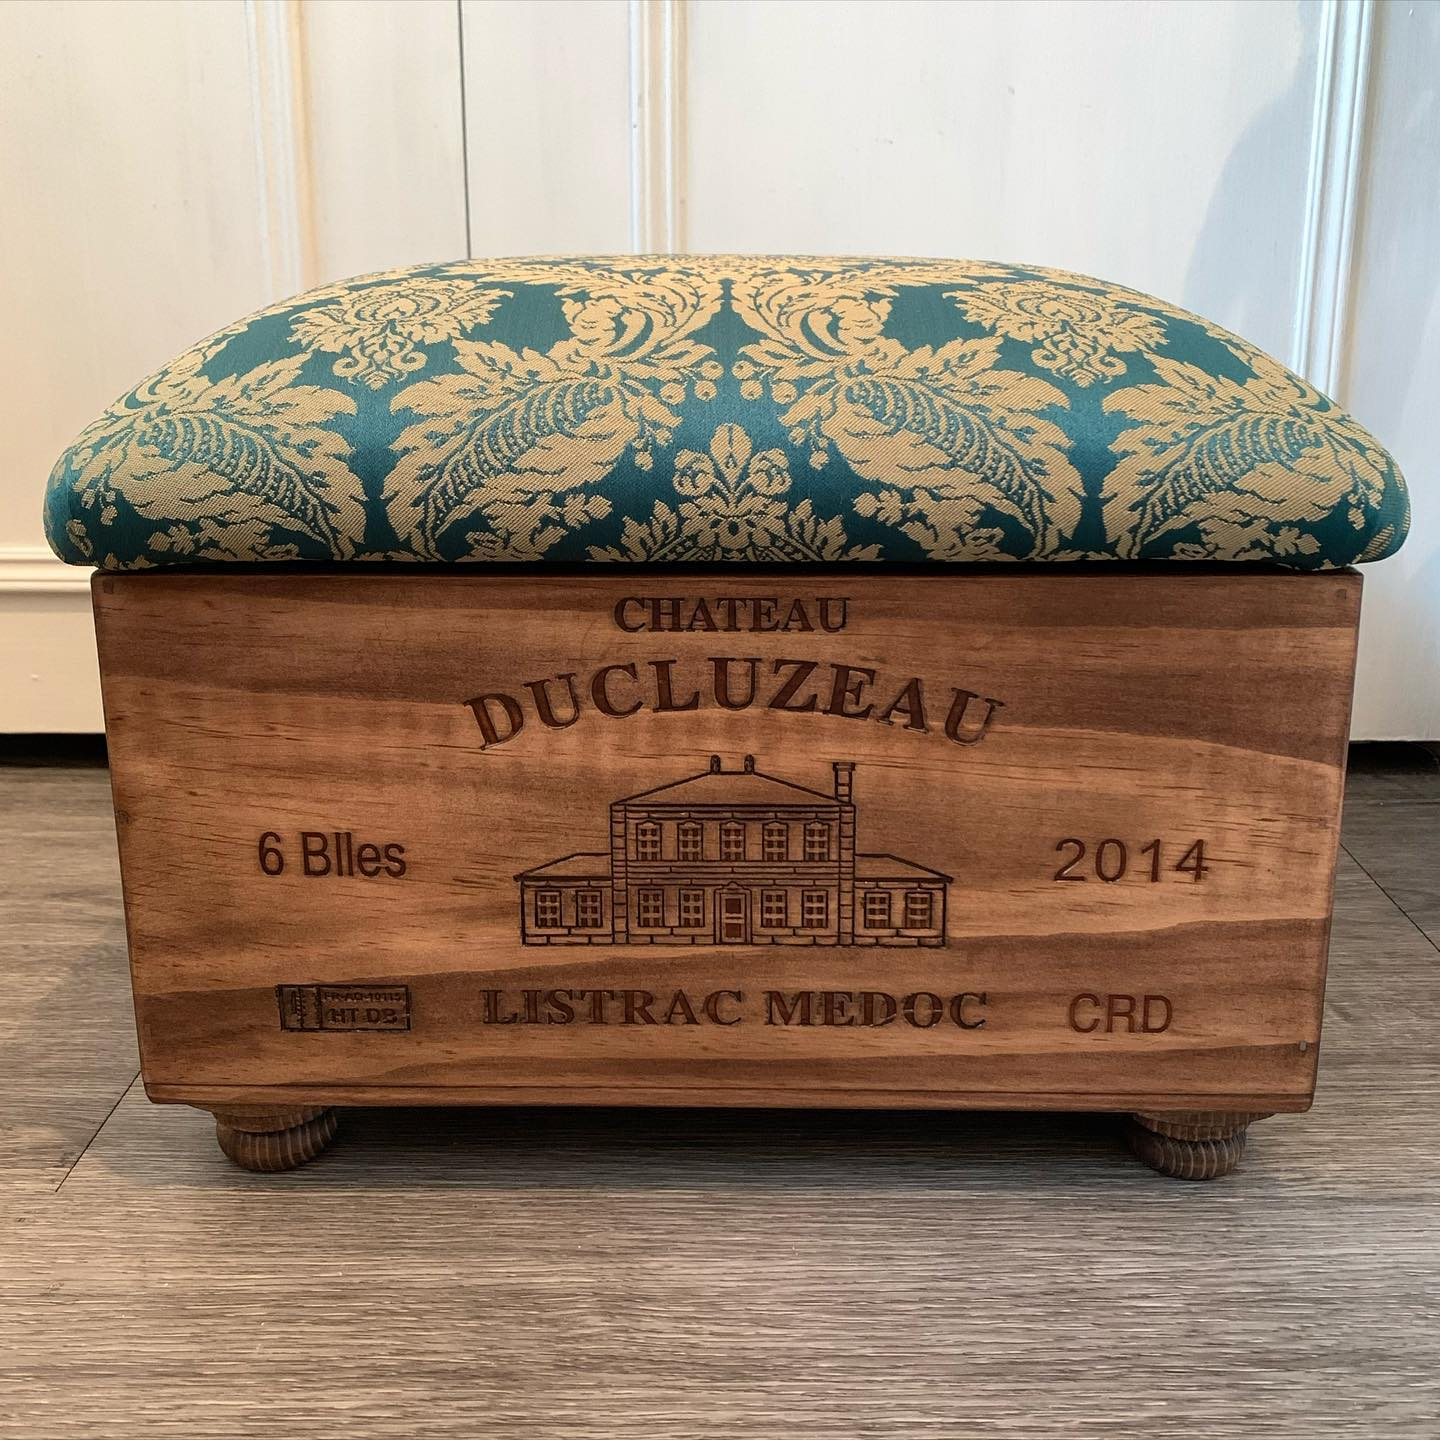 The cutest little ottoman! We've adapted our classic design so that this cutie will fit perfectly underneath the chair it's going with. I just love it!..#teal #paisley #footstool #storage #matchingset #handcrafted #homewares #livingroomdecor #home #winebox #recycle #reuse #history #newlife